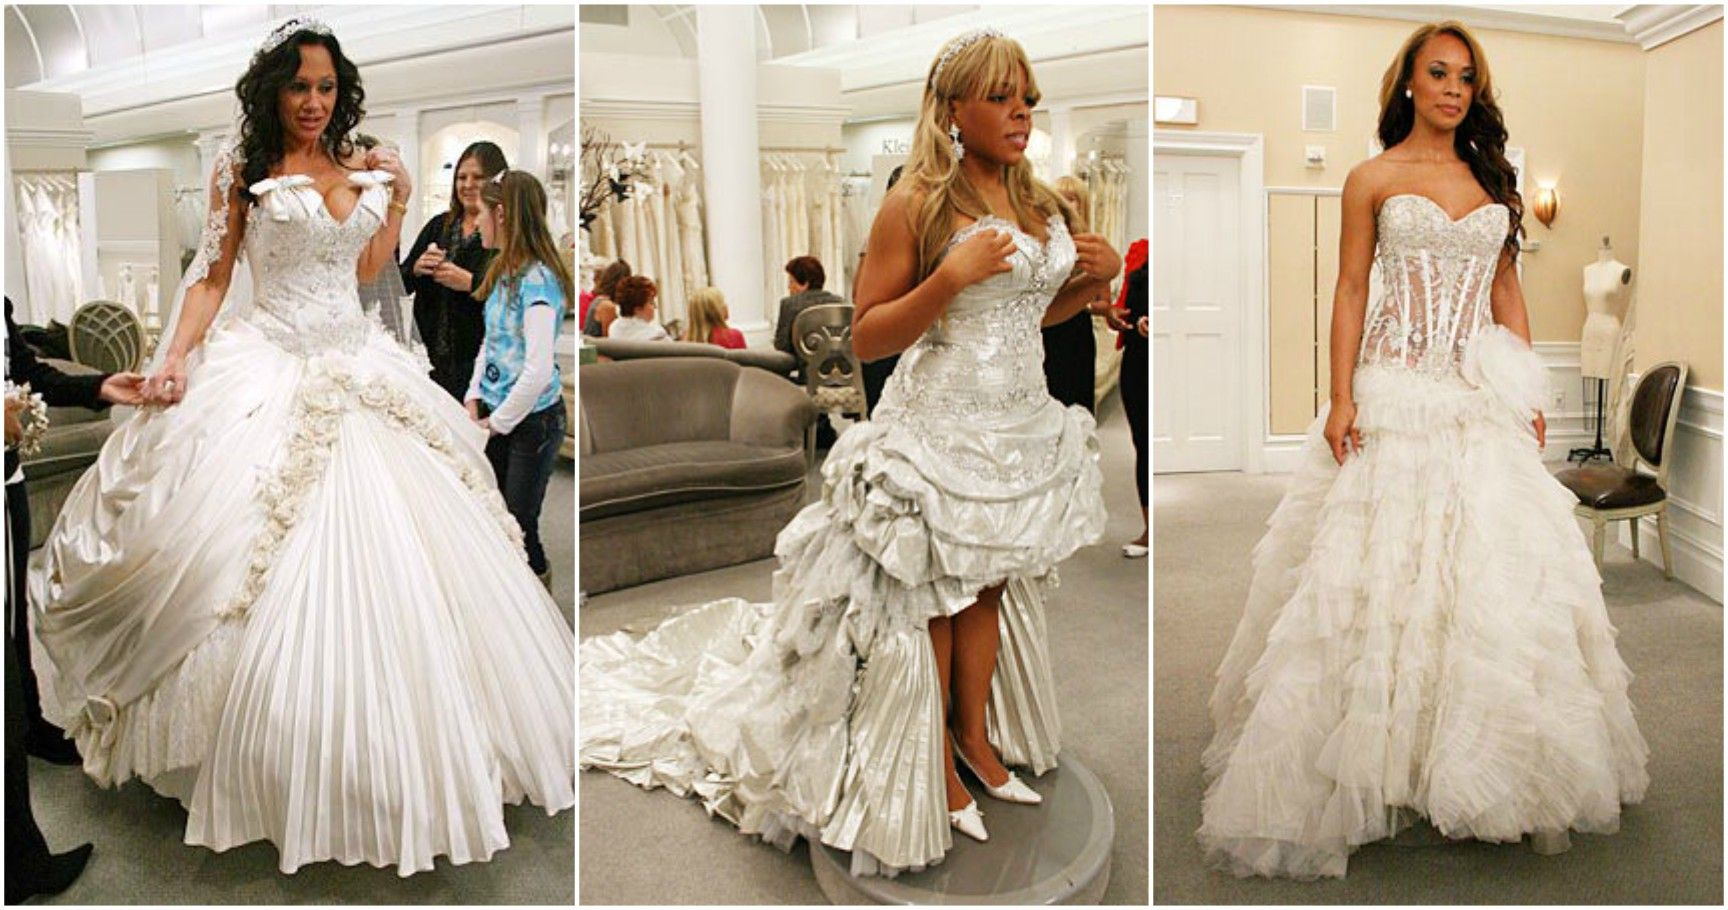 15 Brides Who Should've Said No On 'Say Yes To The Dress'